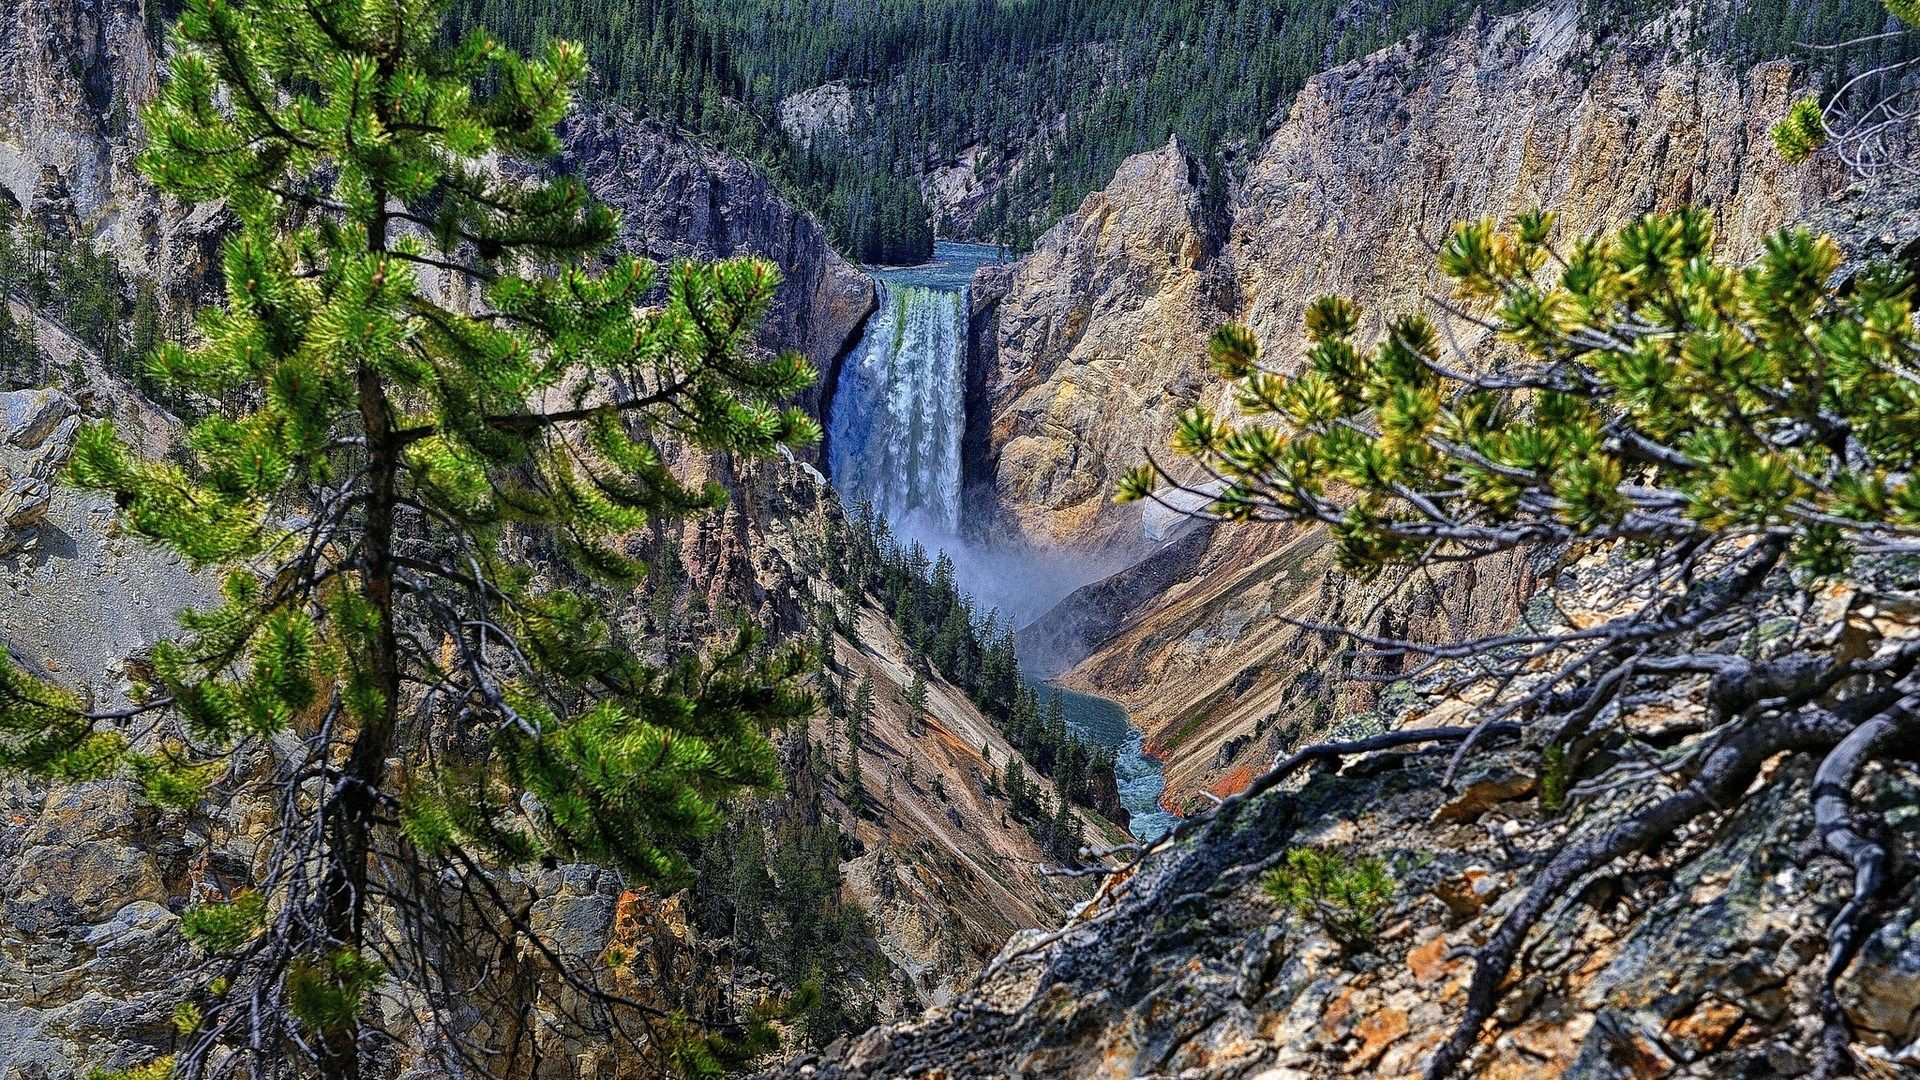 1920x1080 widescreen wallpaper yellowstone national park, 1169 kB - Coburn Jacobson